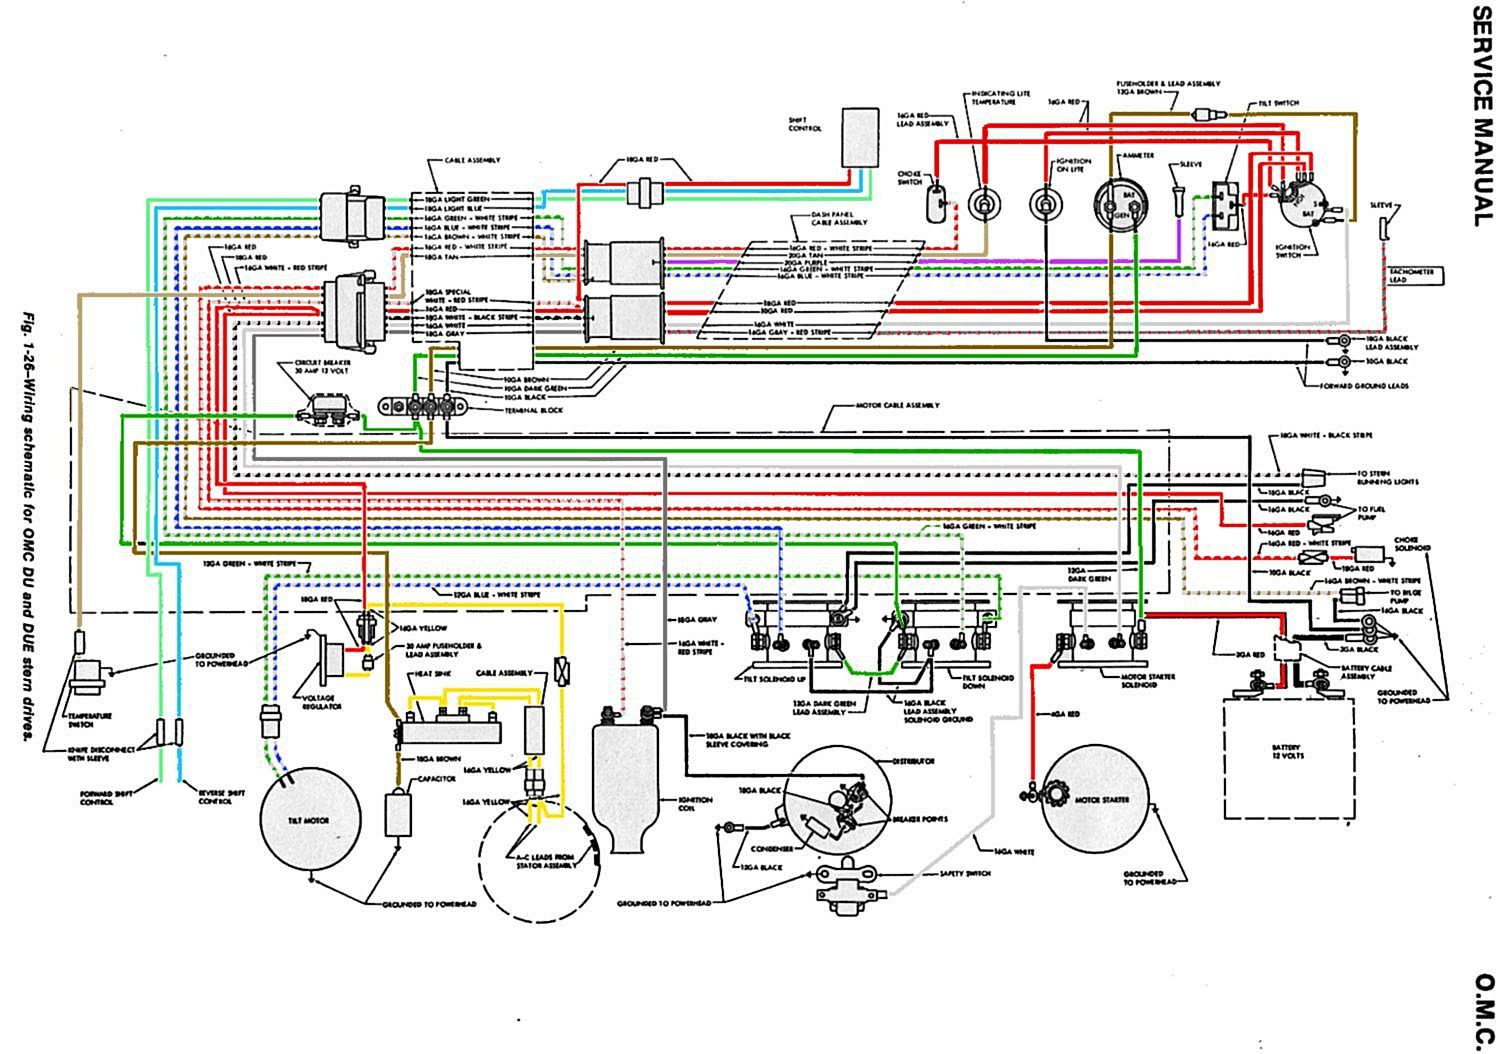 Omc 305 Wiring Harness | Wiring Diagram Omc Cylinder Spark Plug Wiring Diagram on